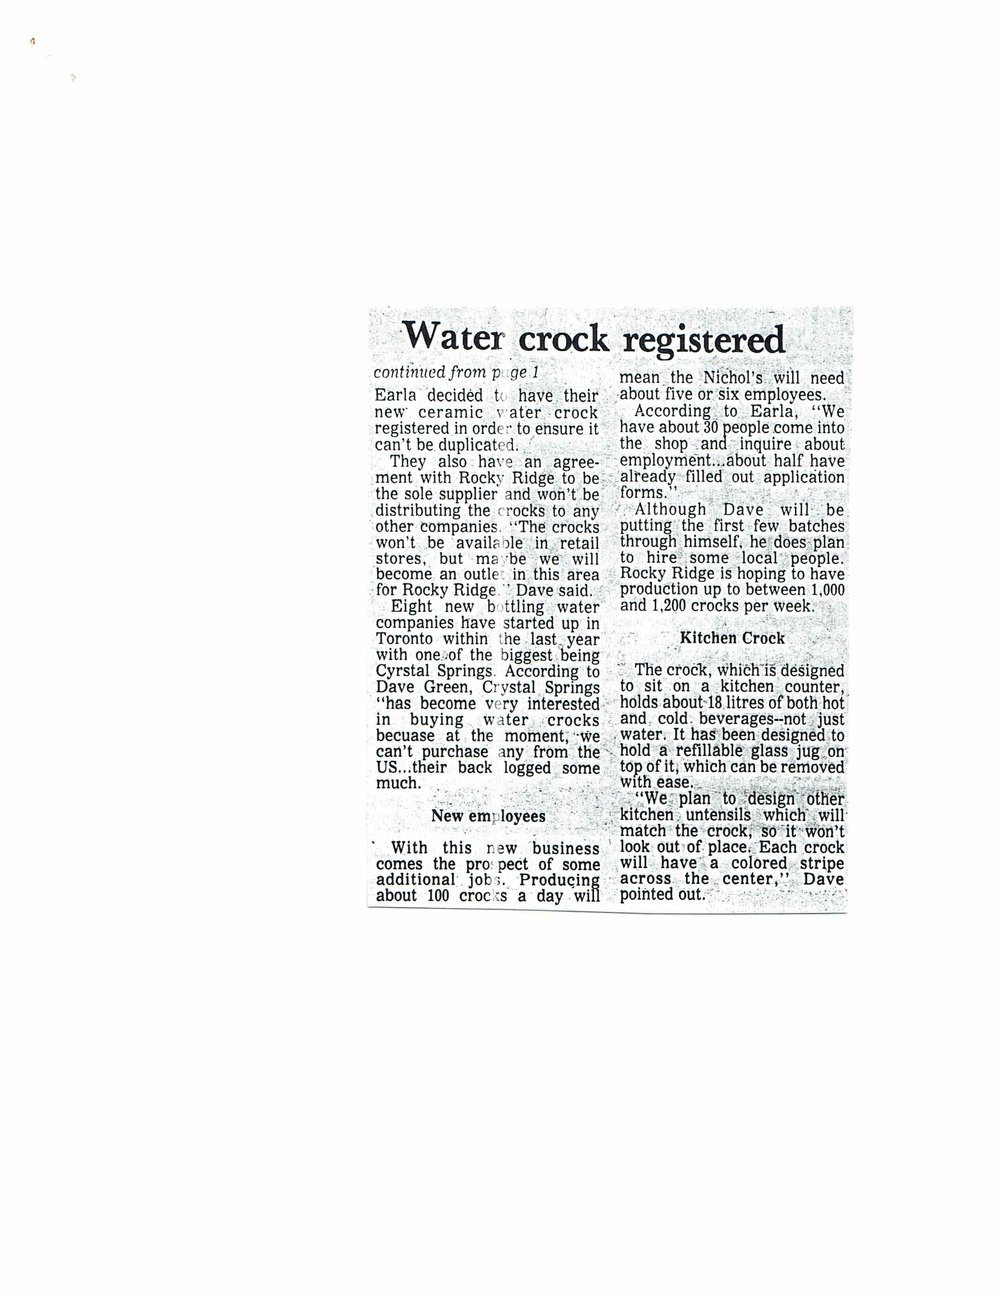 Nichols water crocks page 2.JPG